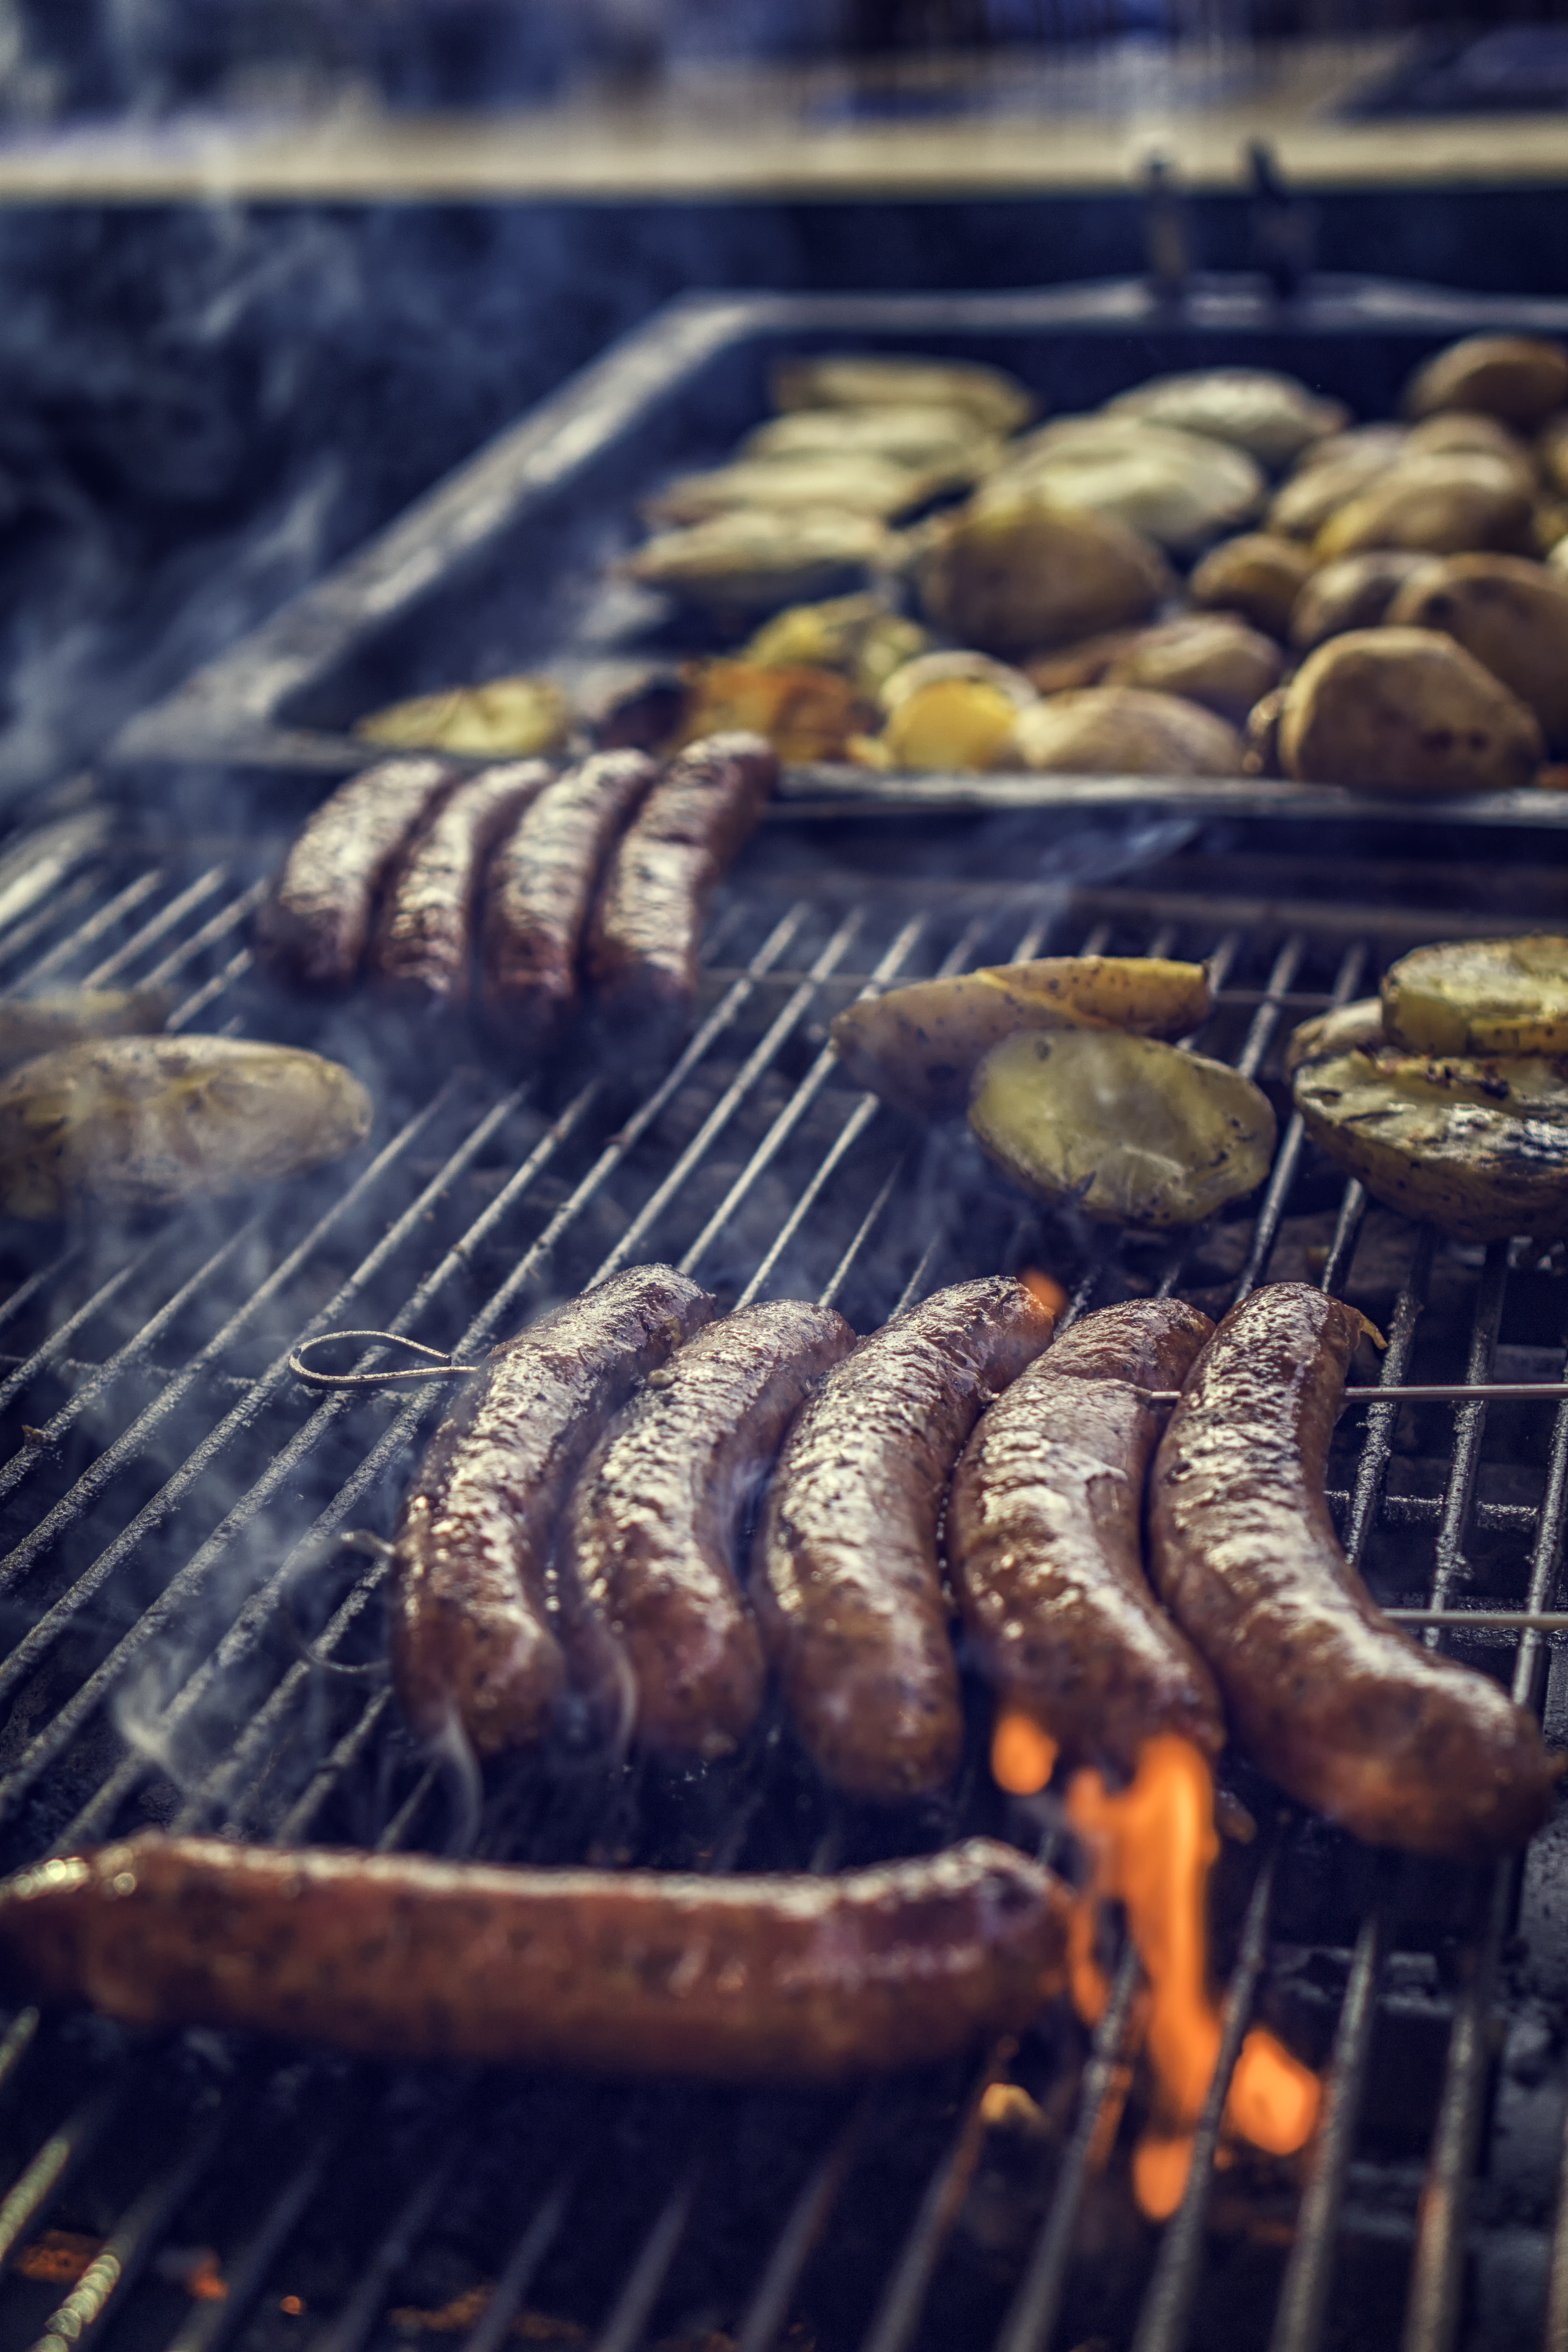 Delicious street food with grilled chorizo and potatoes on a barbecue grill